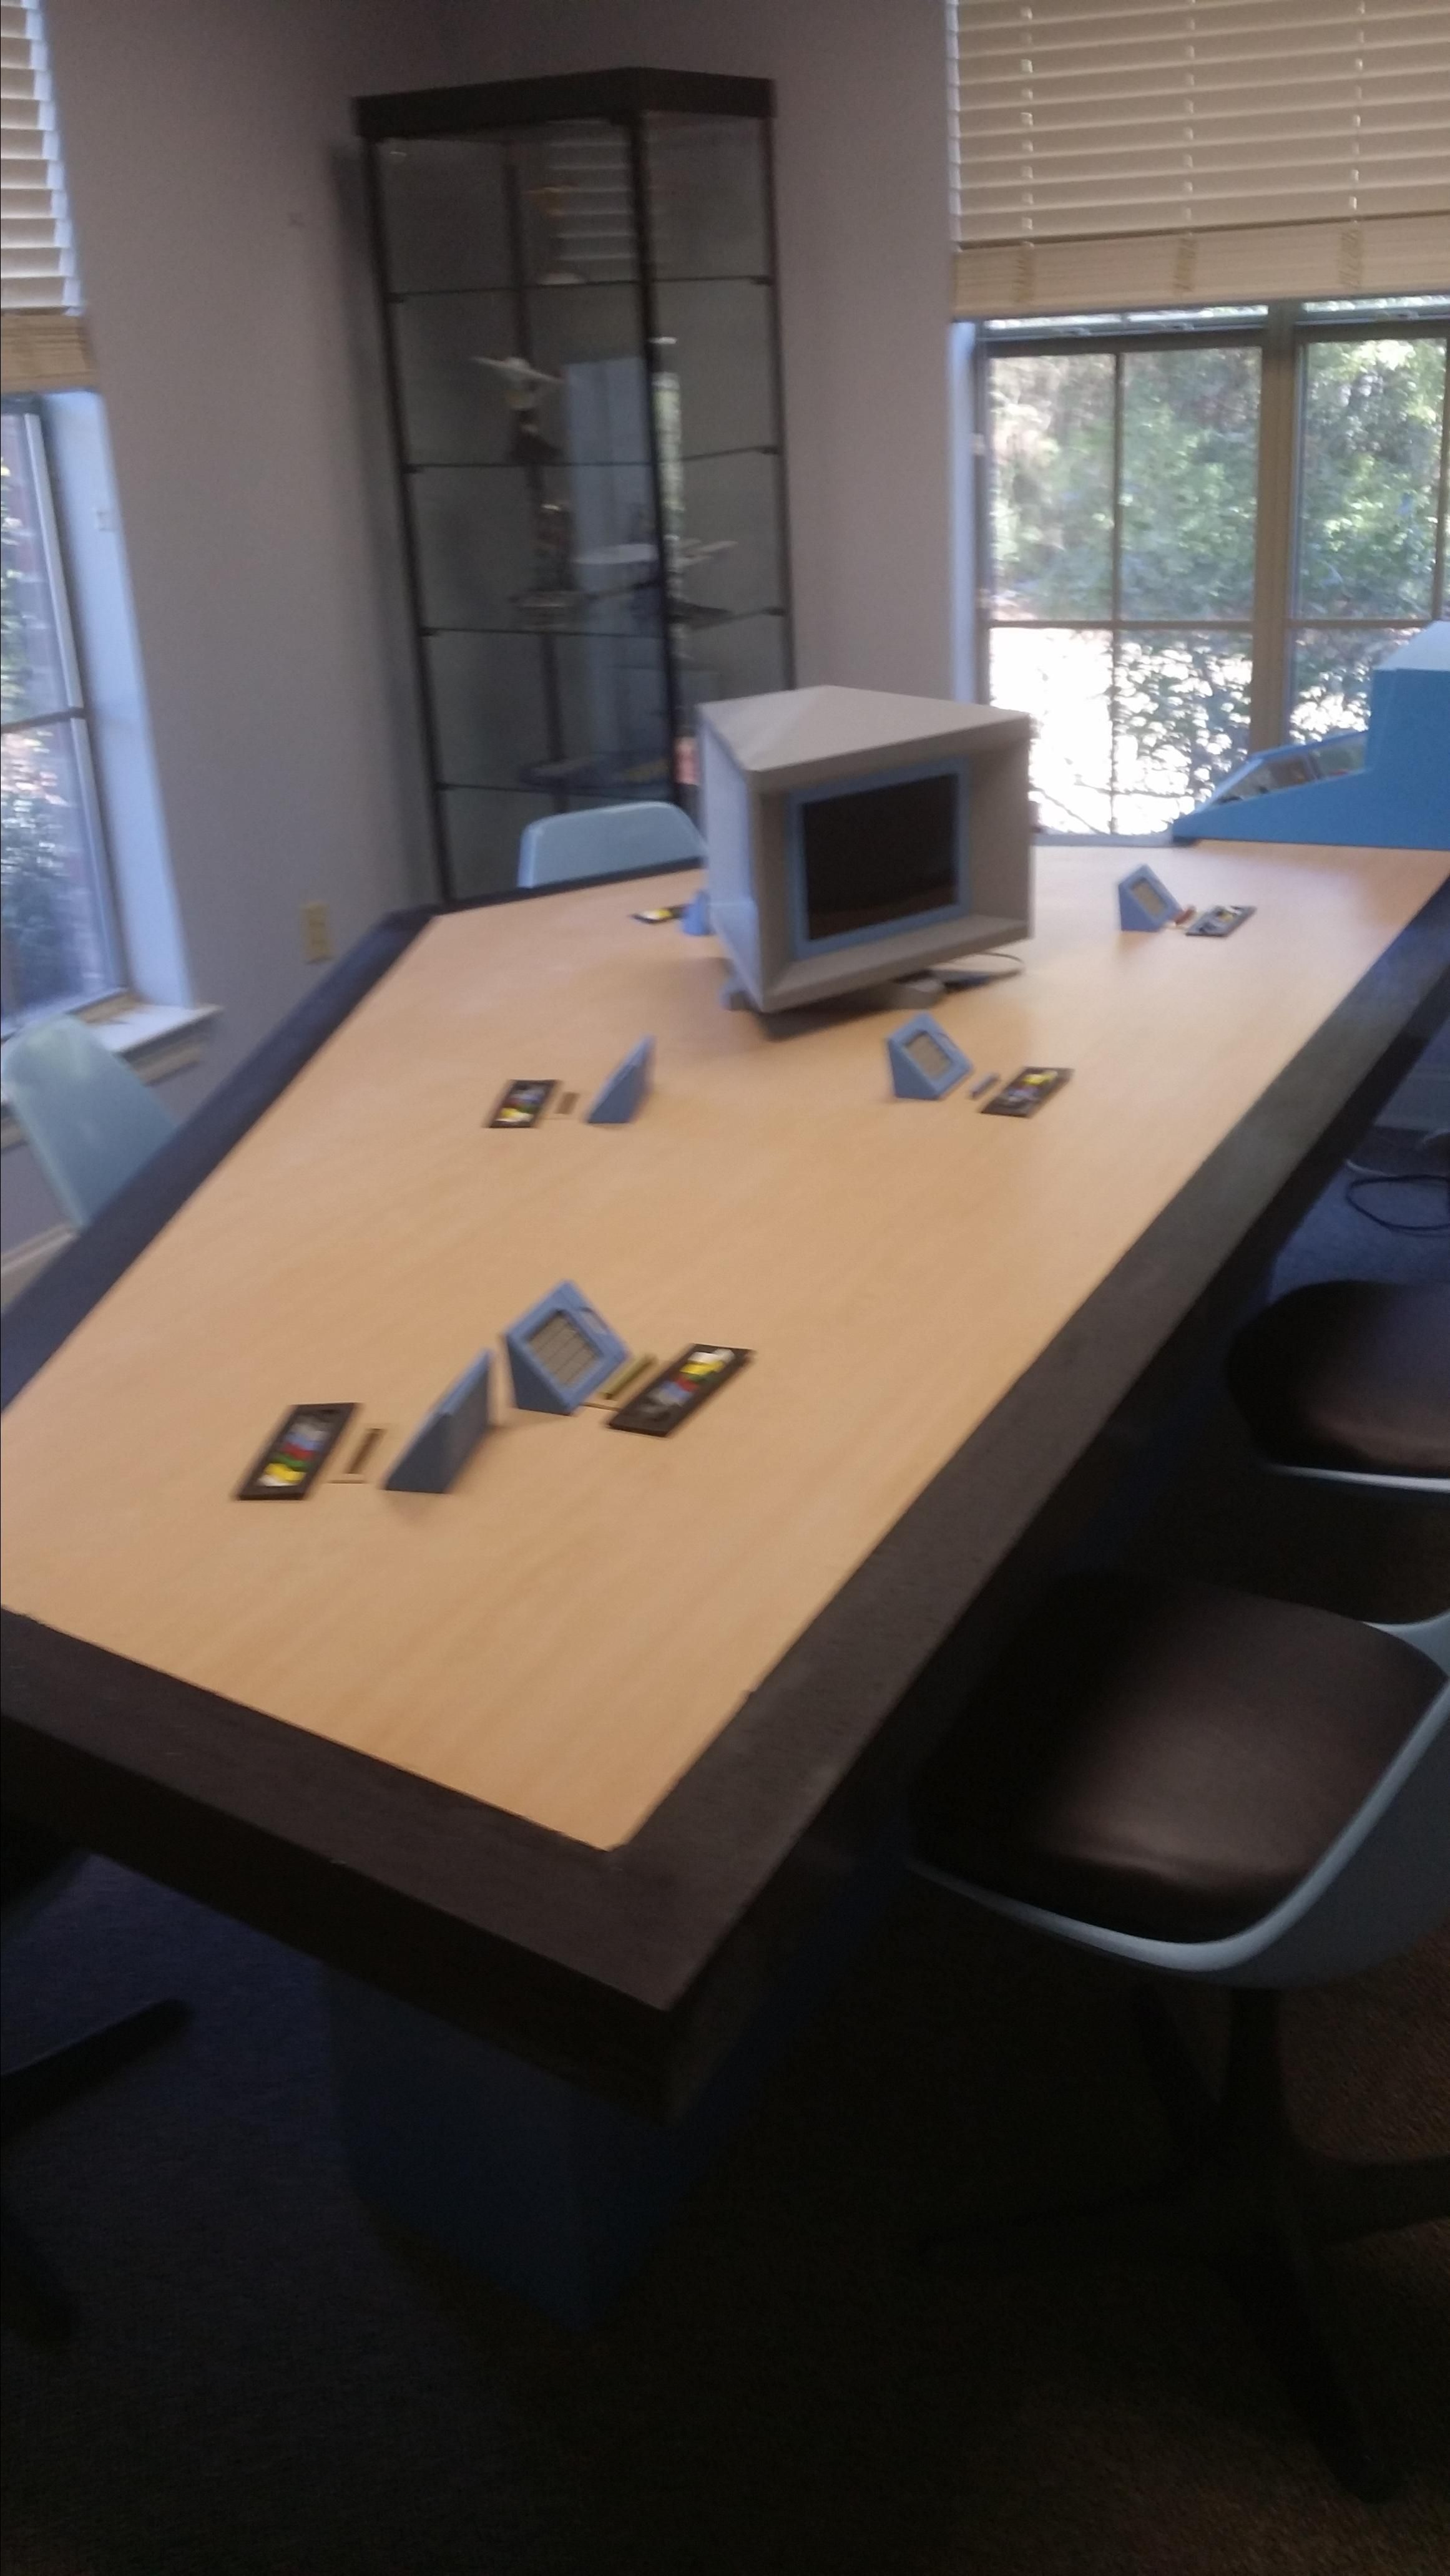 Hand Made Tos Star Trek Briefing Room Table by Southern